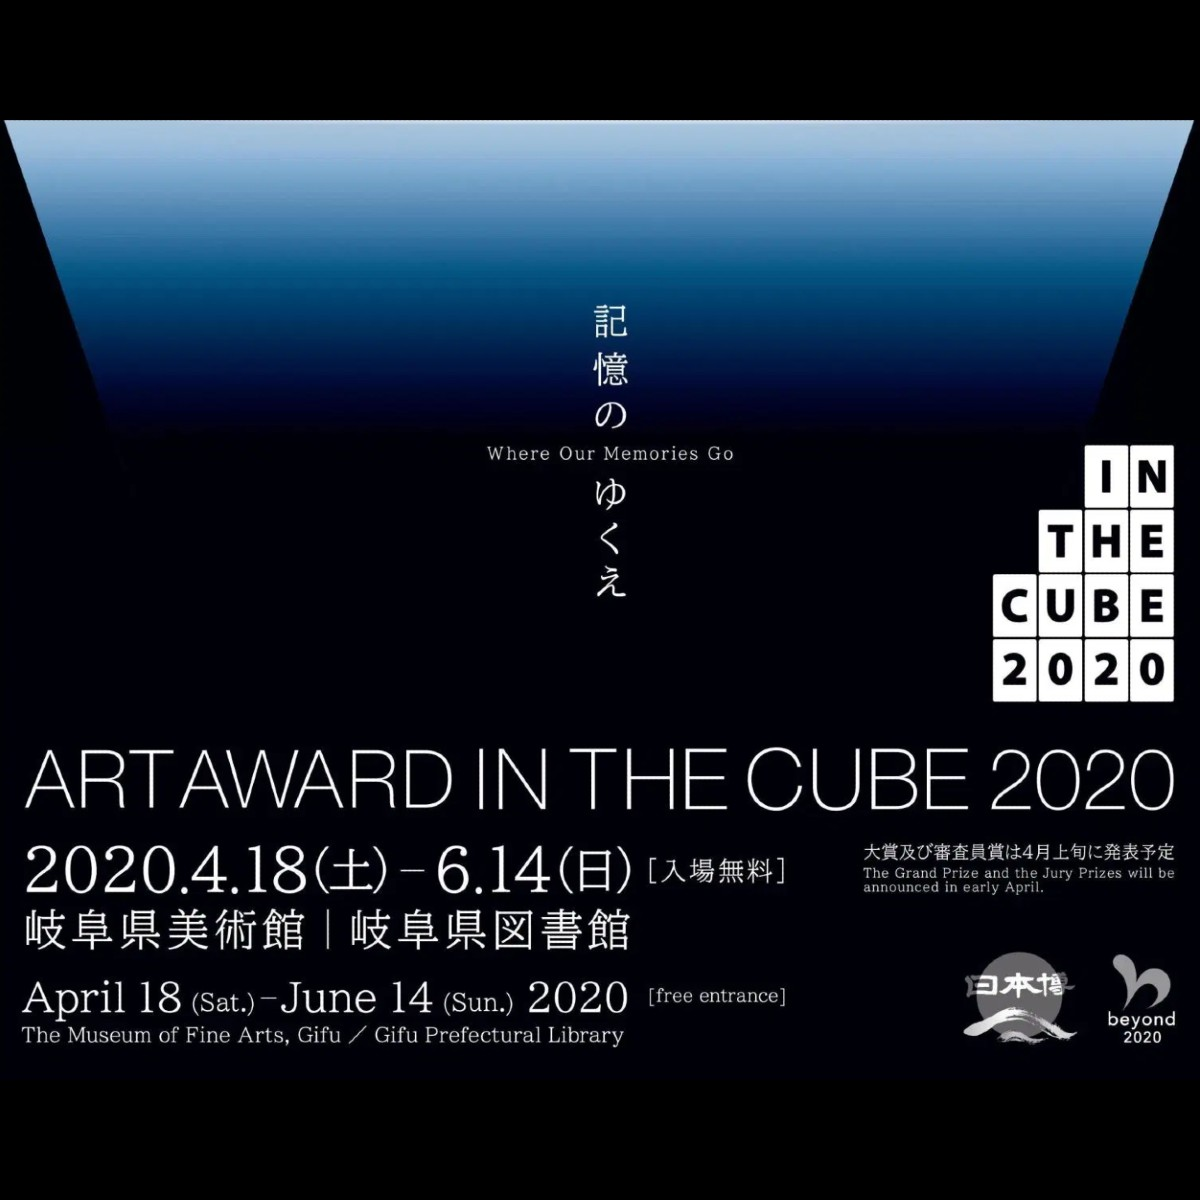 Art Award In The Cube 2020